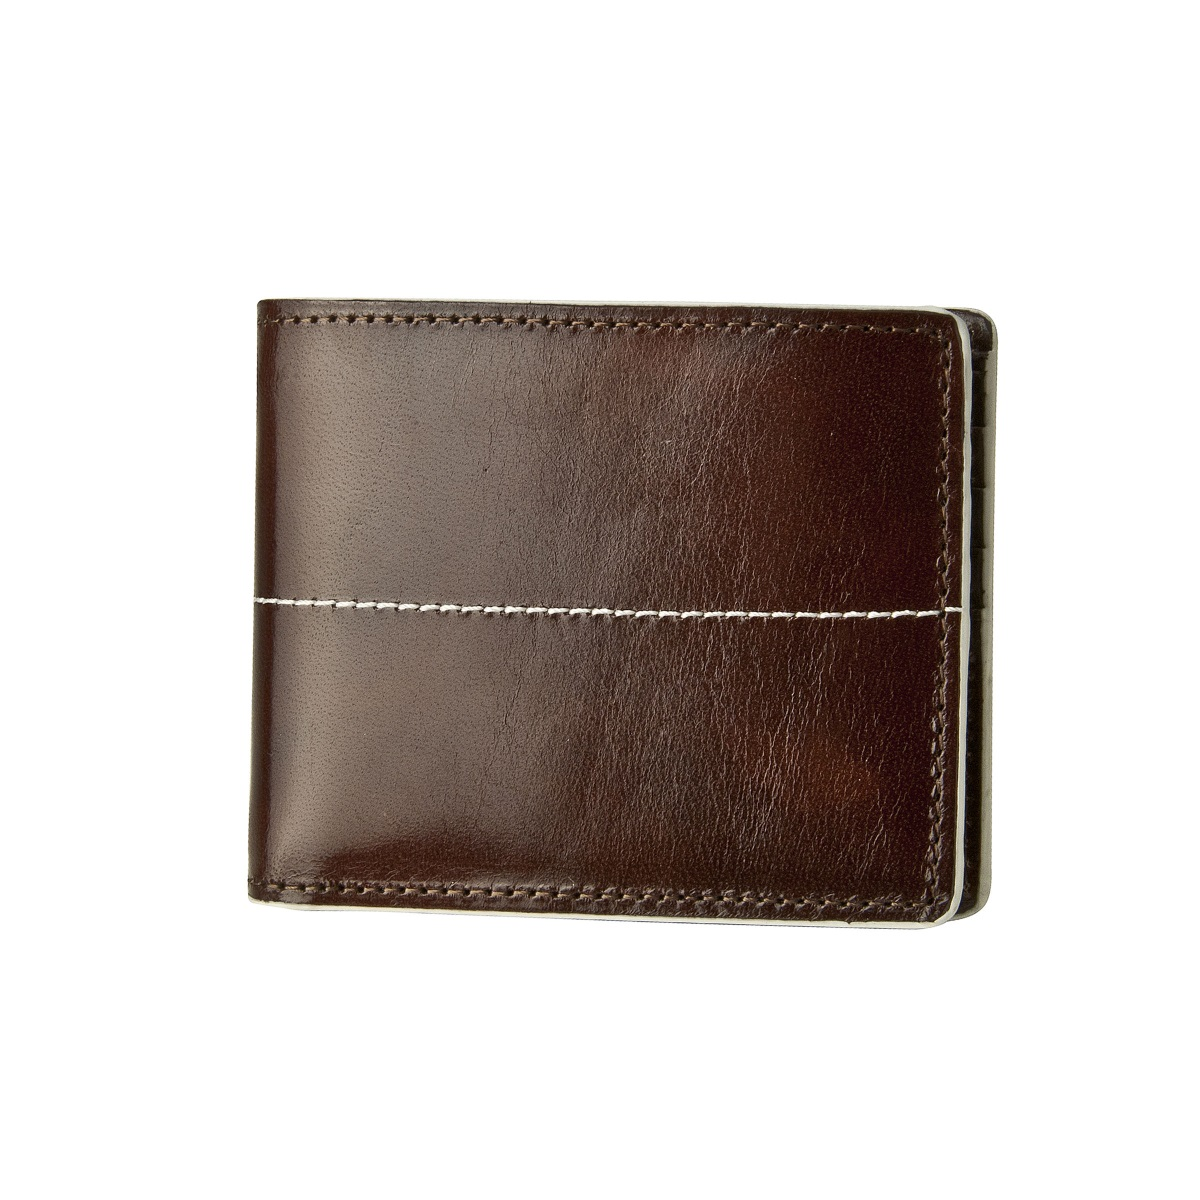 Thunderbird Leather Wallet - Brown/Ivory